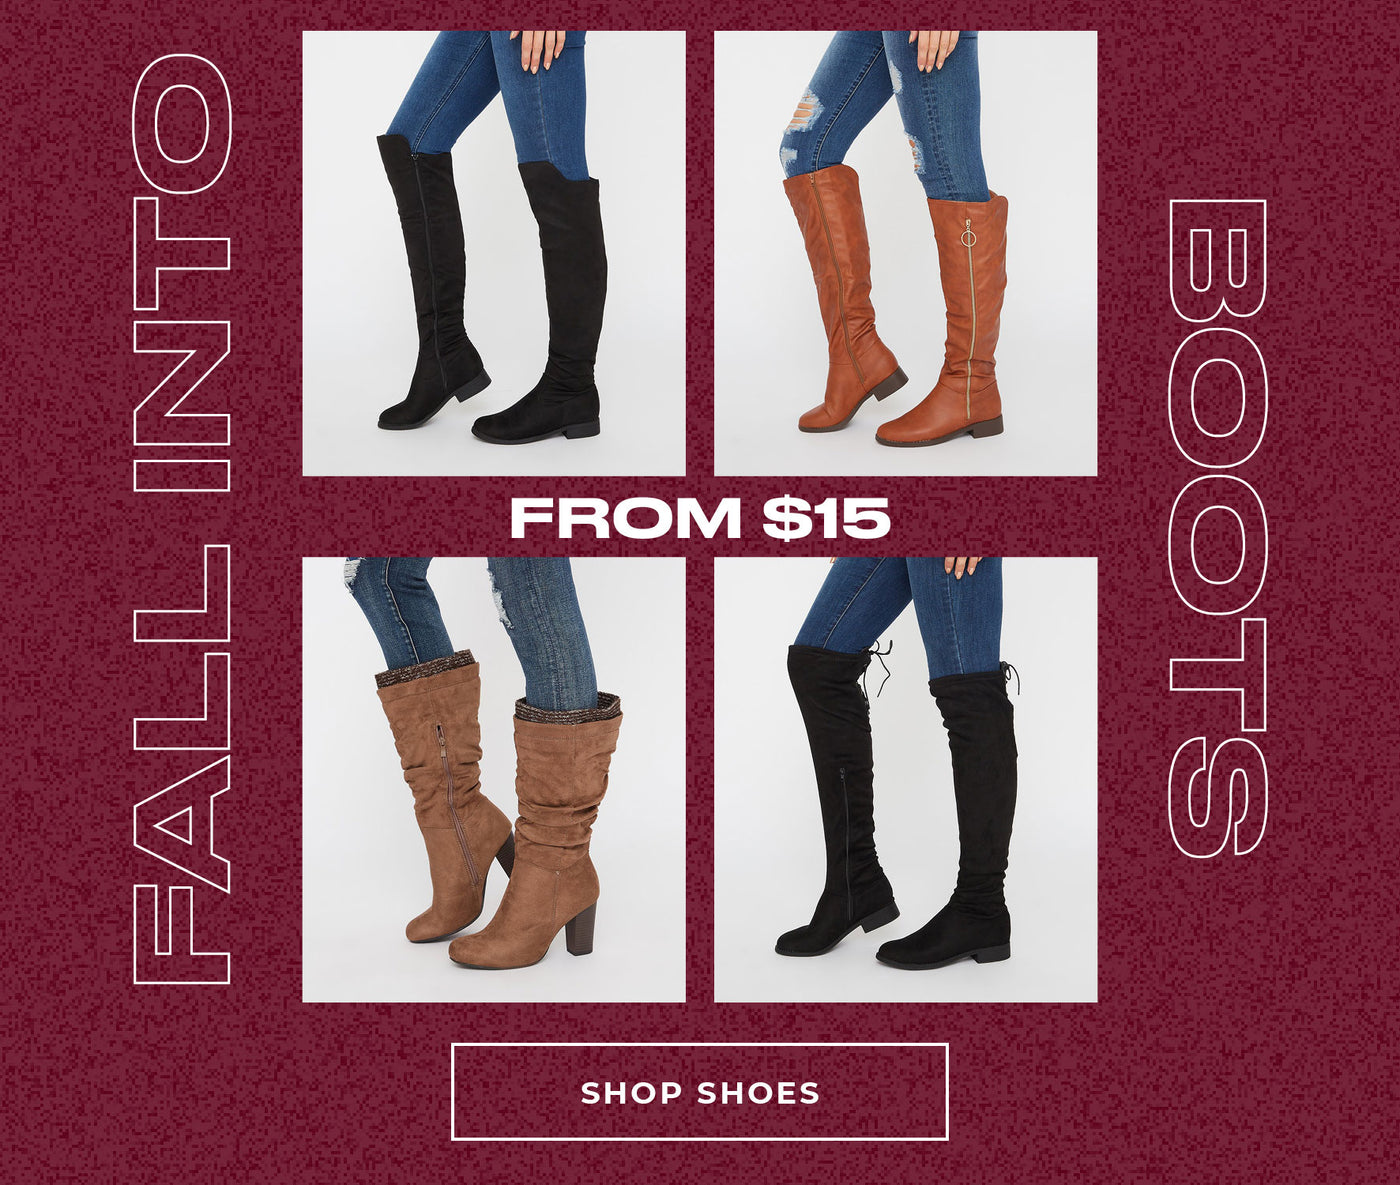 Charlotte Russe | Fall Into Boots - From $15 - Shop Shoes